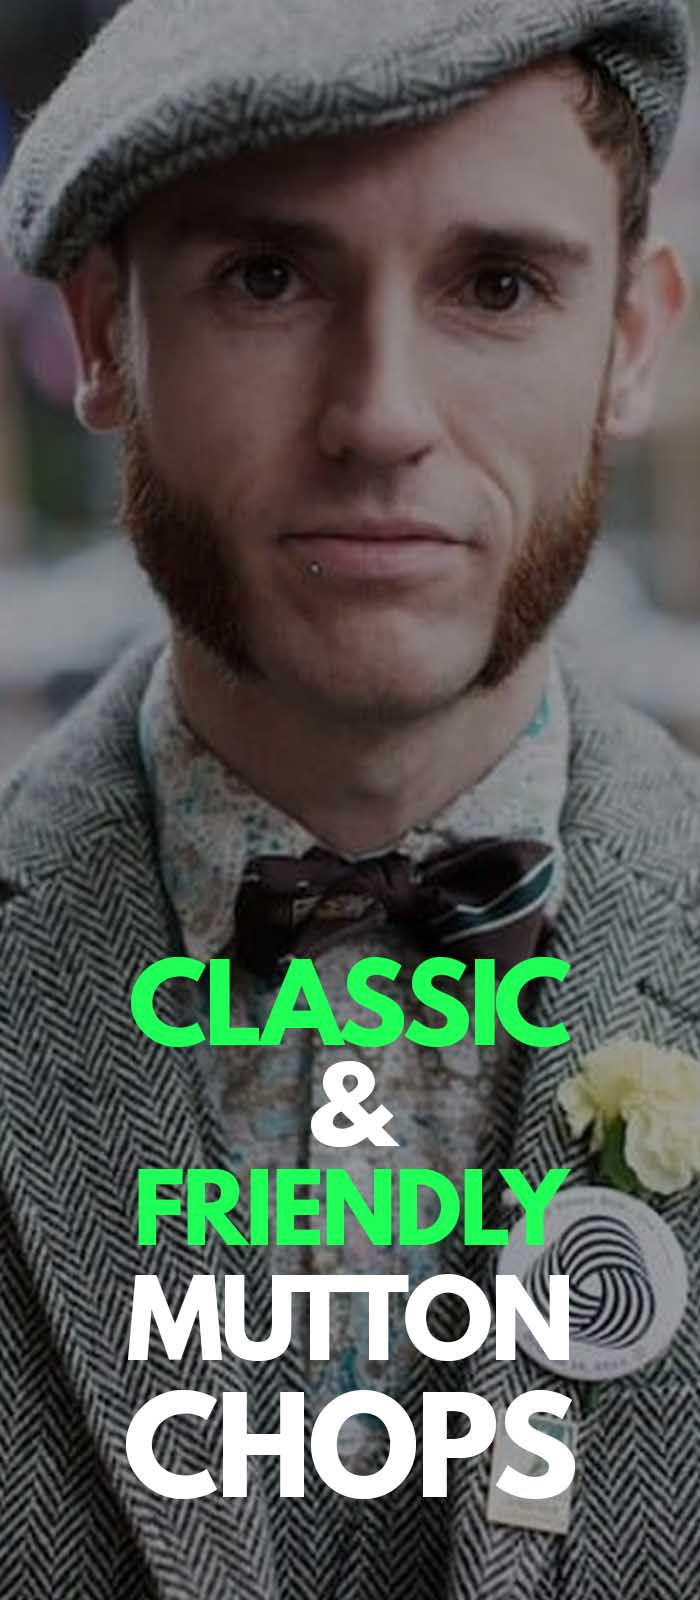 Classic Mutton Chops & Friendly Mutton Chops Differences!